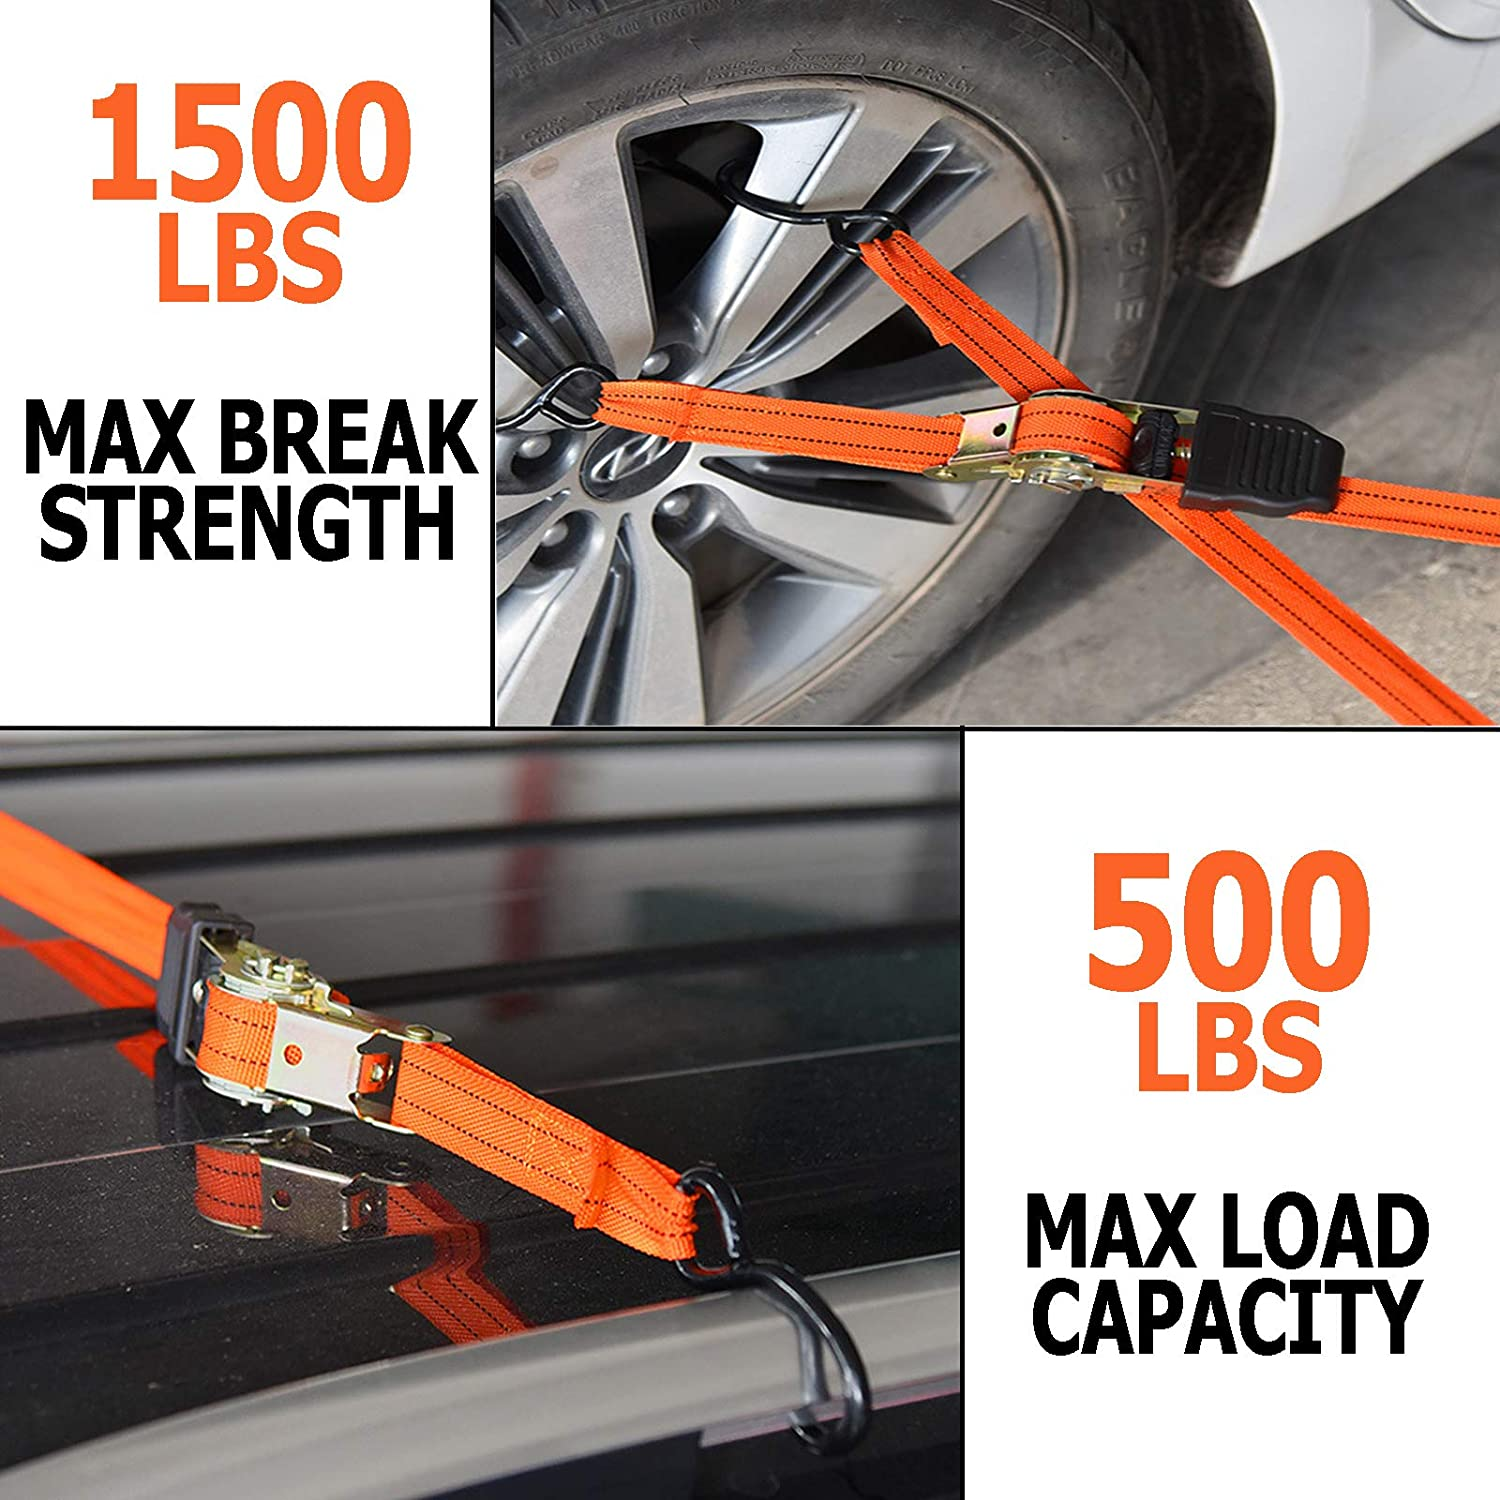 1,500 LB Max Break Strength 15ft Straps 500 Lbs Load Capacity 4PK Securing Cargo Perfect for Home Move Ratchet Tie Down Straps Plastic Coated Metal Hooks - S-Hook Ratchet Straps